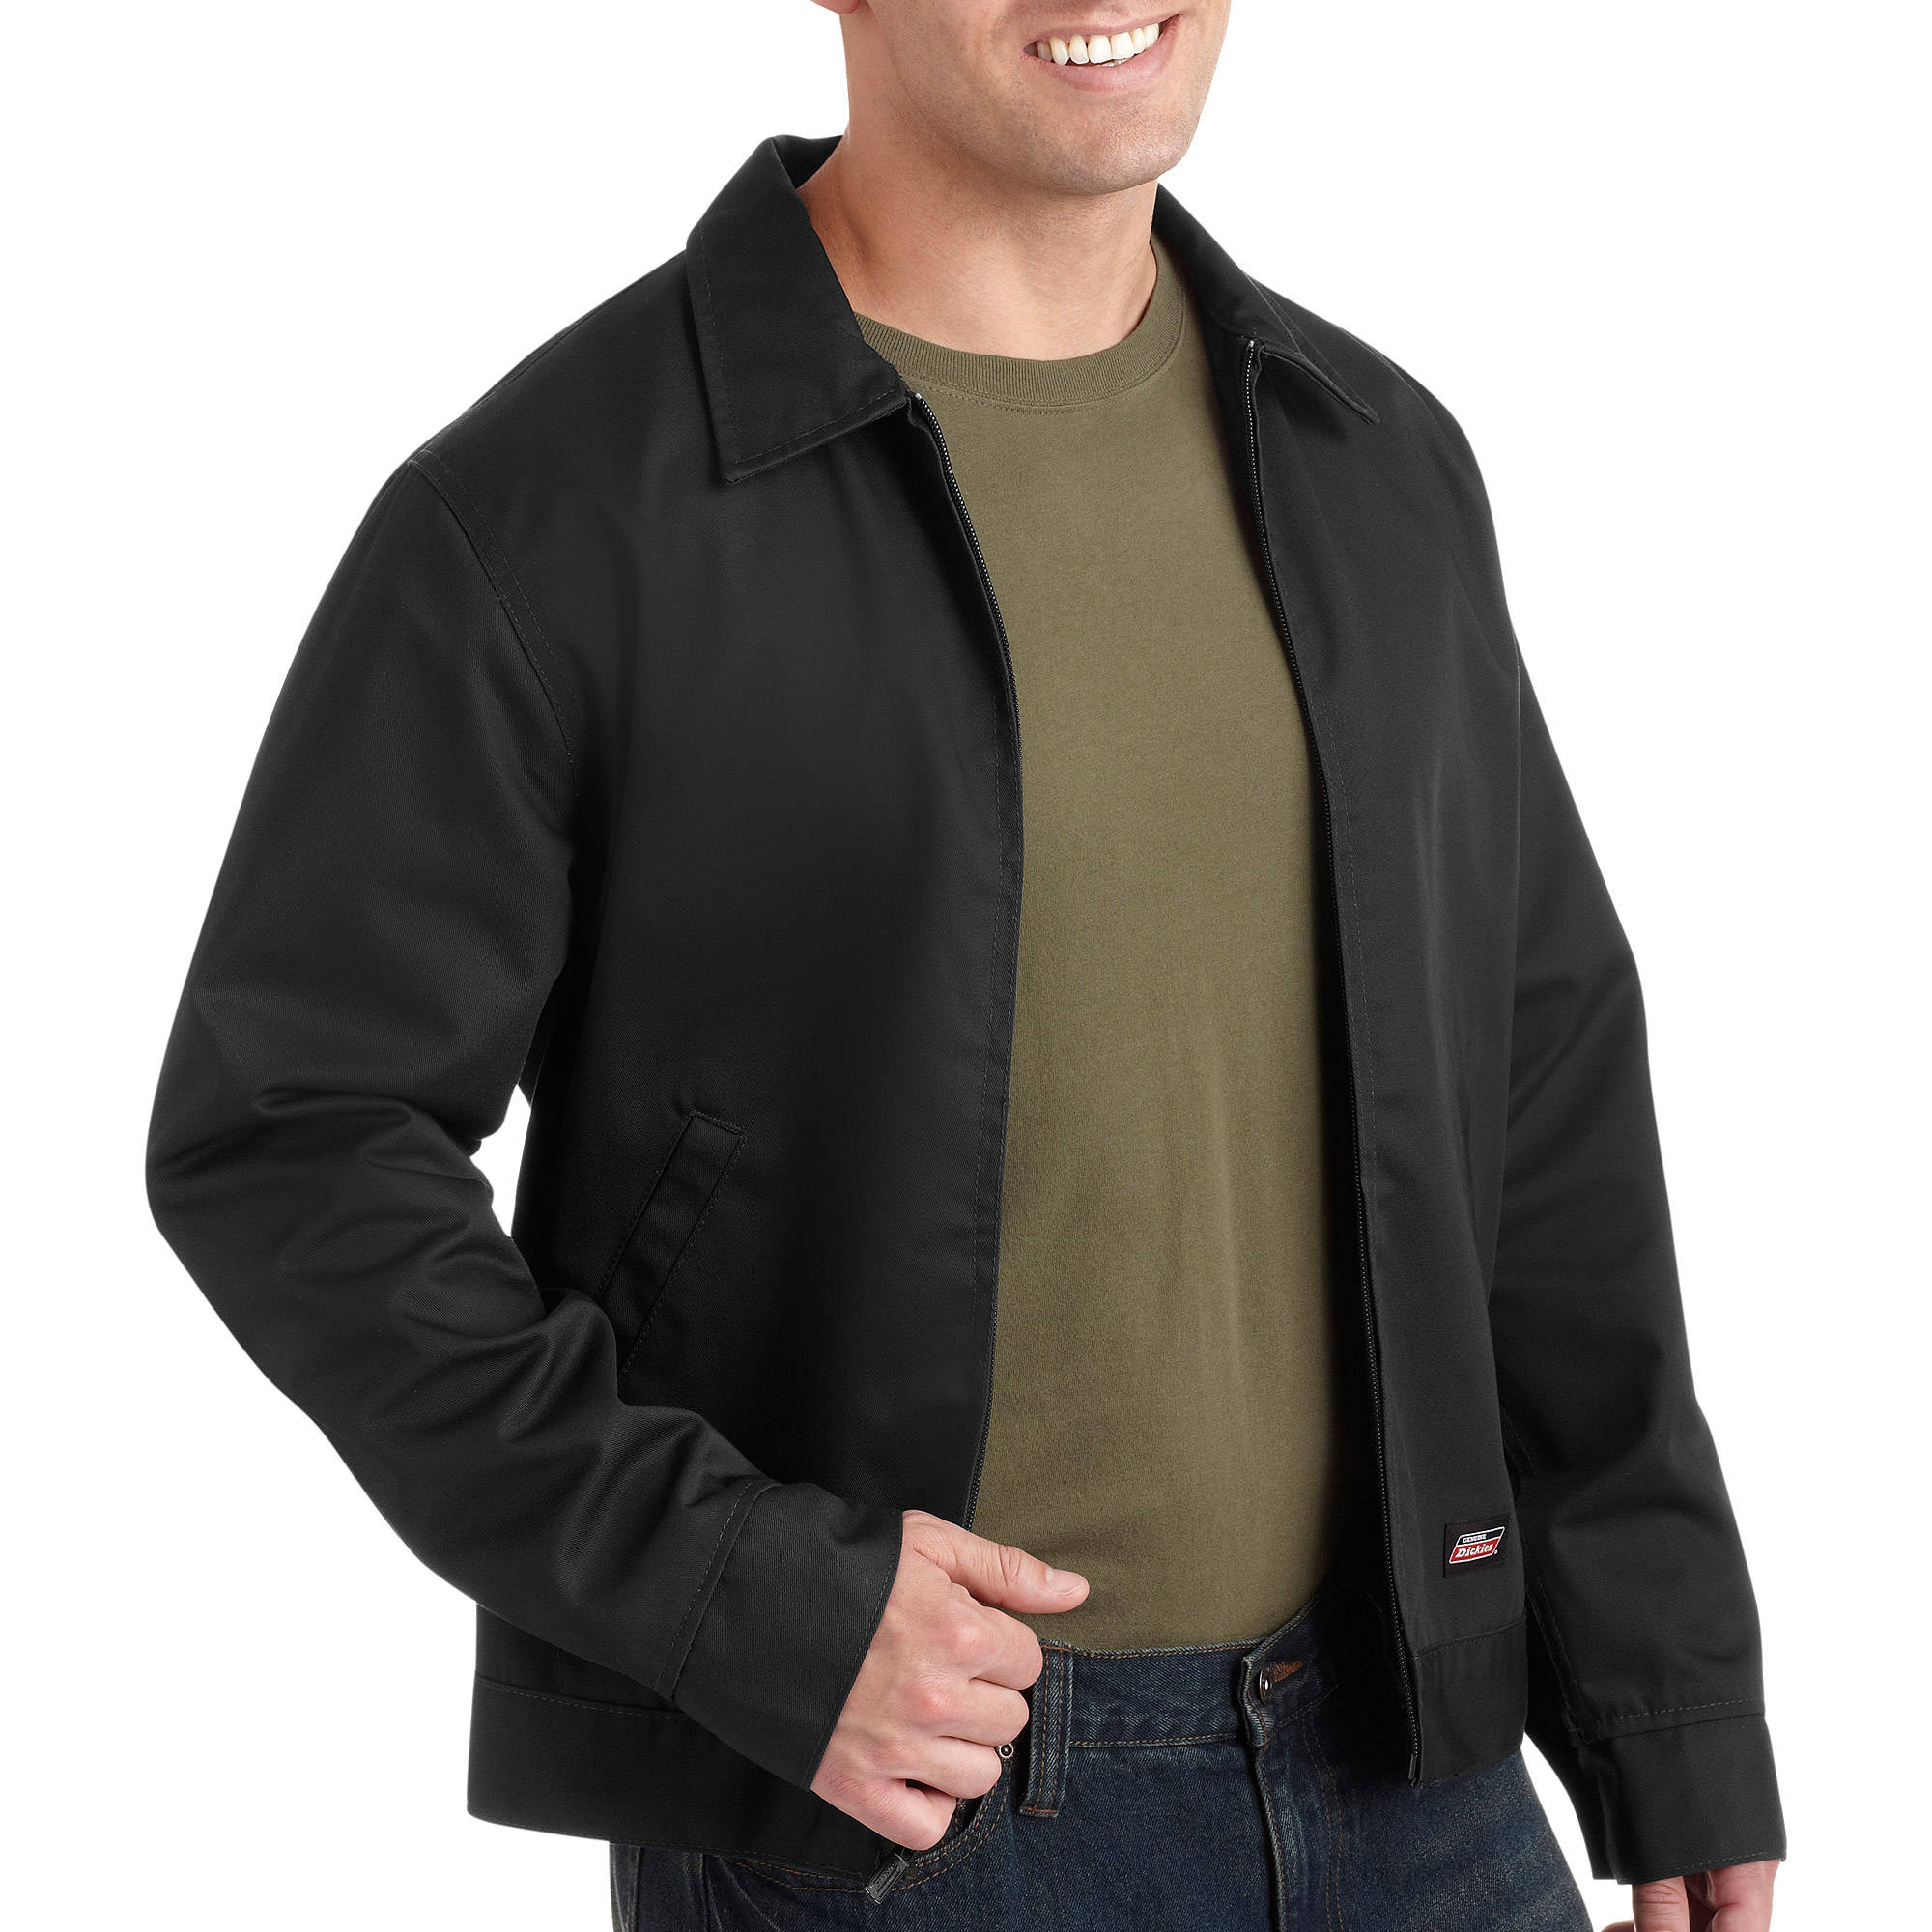 652a4ad8147 Dickies Men s Jackets   Outerwear